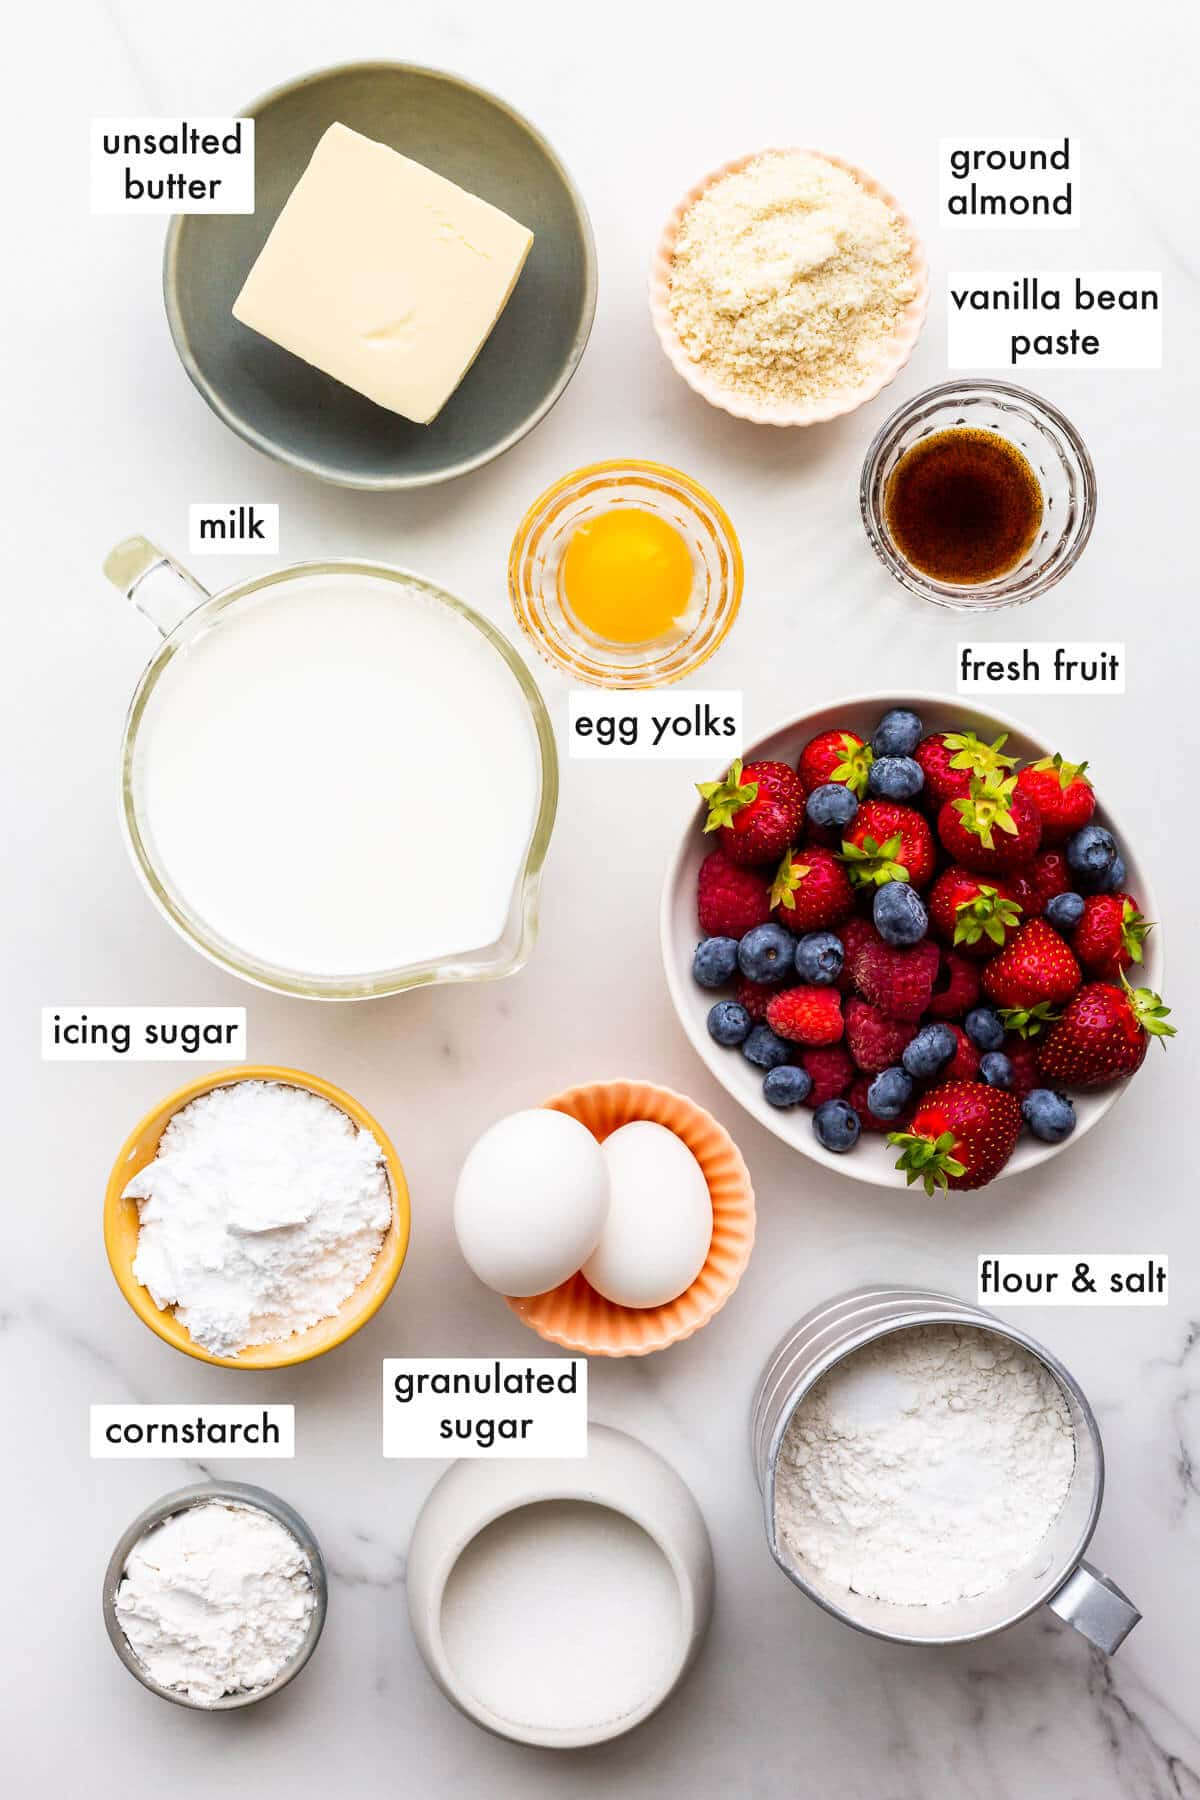 Ingredients to make a fruit tart from scratch measured out.